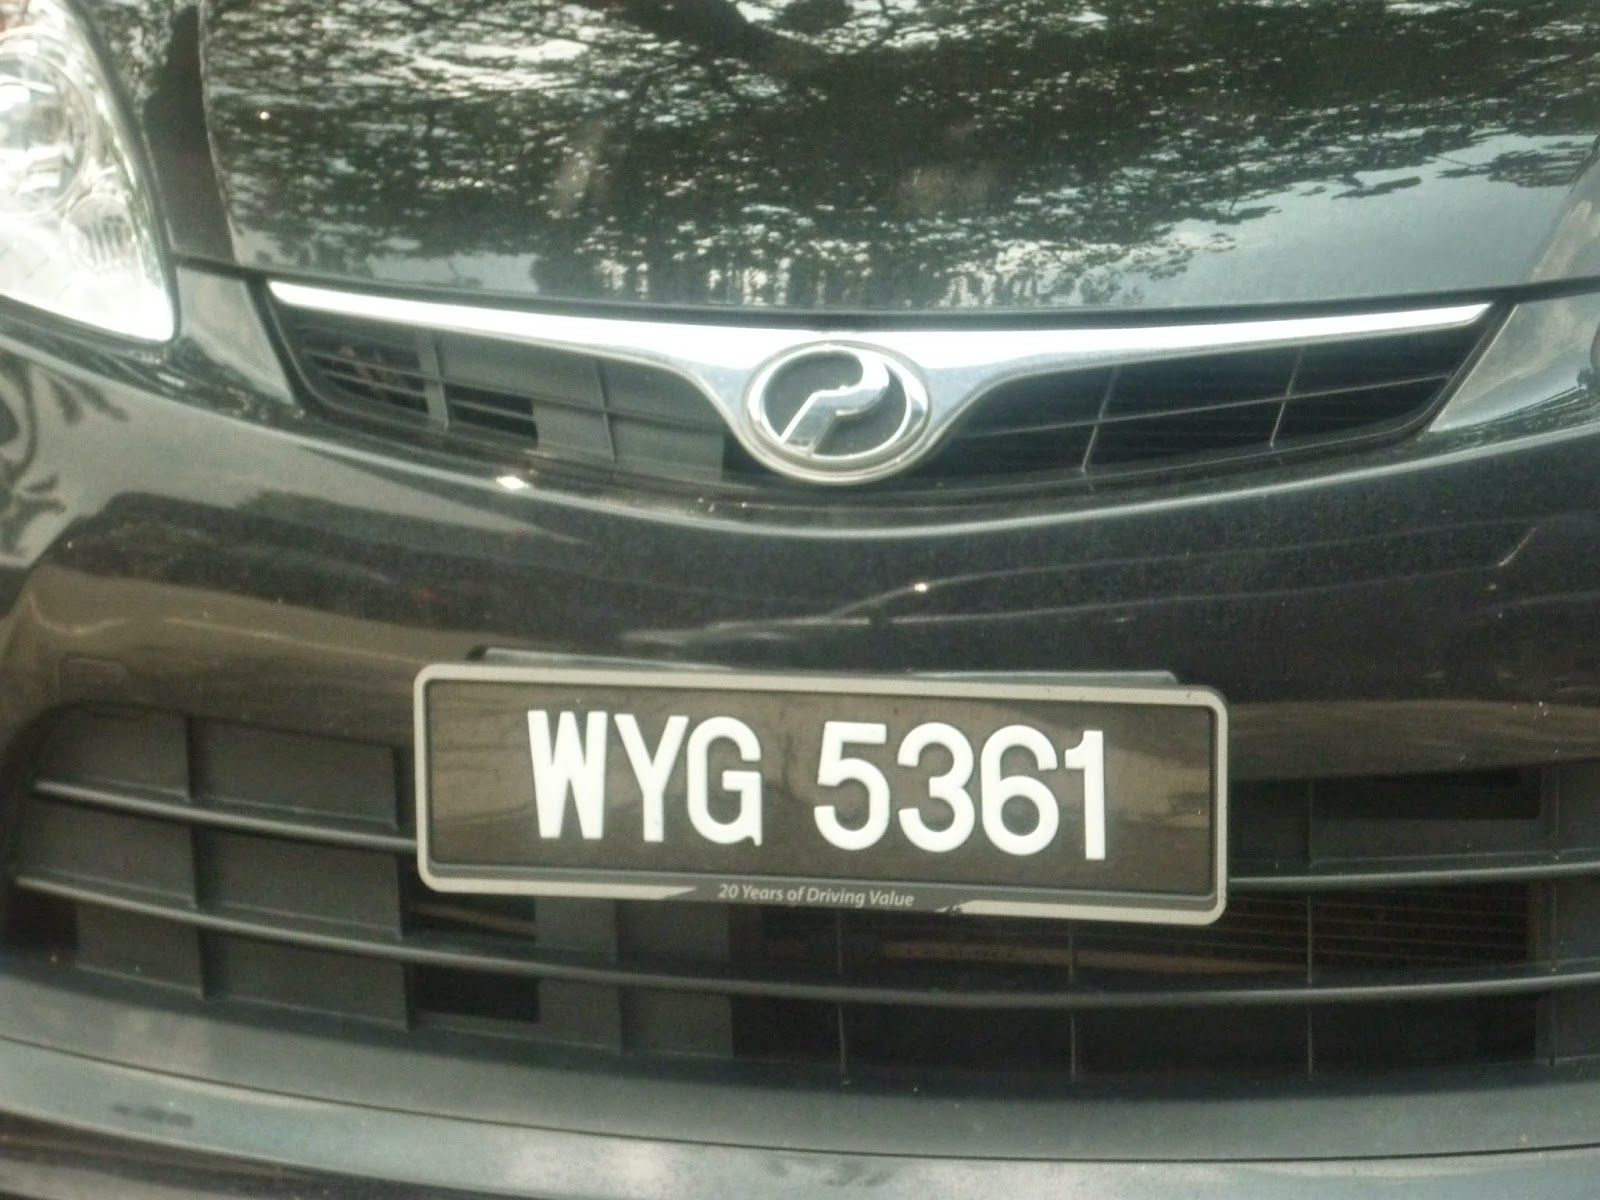 david 3816: JPJ to act on fancy number plate